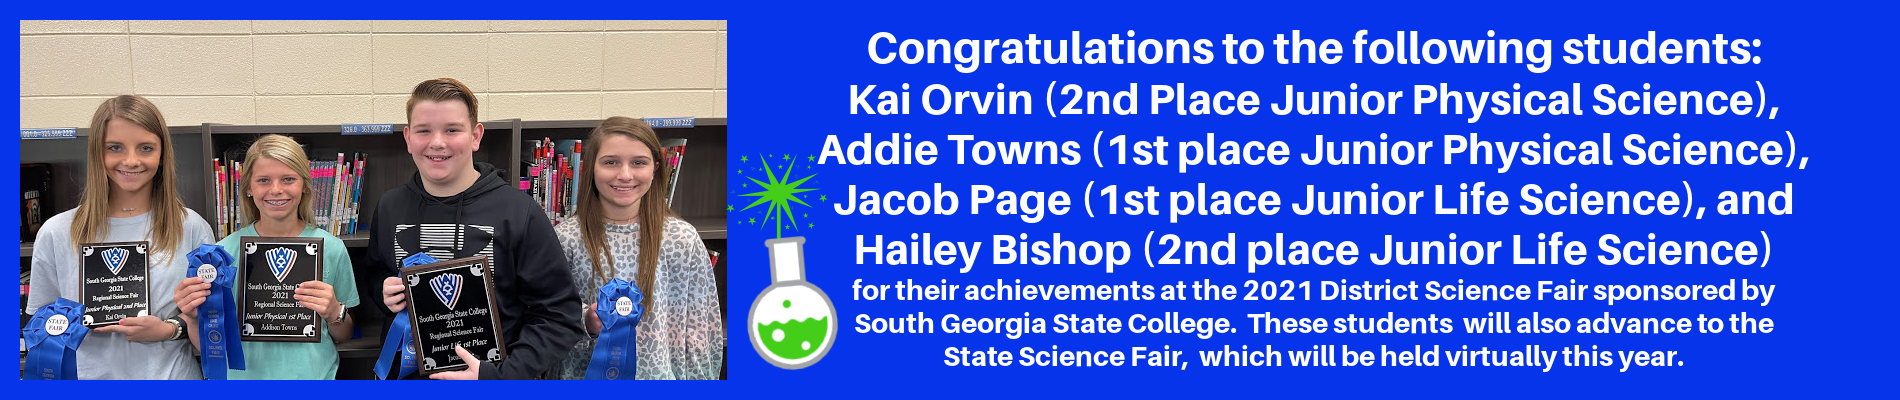 ACMS District Science Fair Winners Advancing to State Science Fair